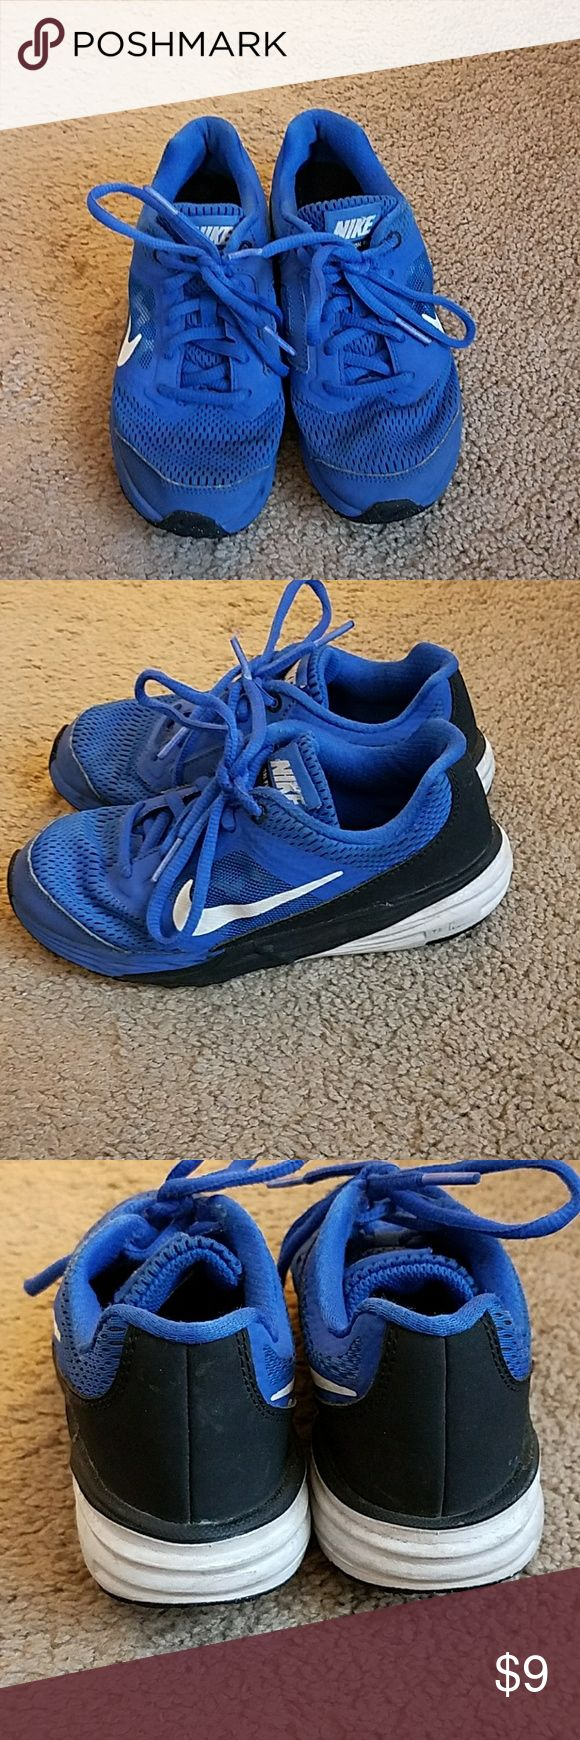 Nike Tri Fusion Run Boys Sneakers Size 13.5 Preloved Boys Nike Tri Fusion Sneakers Size 13.5 Blue, White, and Black. No tears, snags, or holes but signs of wear include dirt, and as shown the tri fusion wording on the side has mostly rubbed off Nike Shoes Sneakers